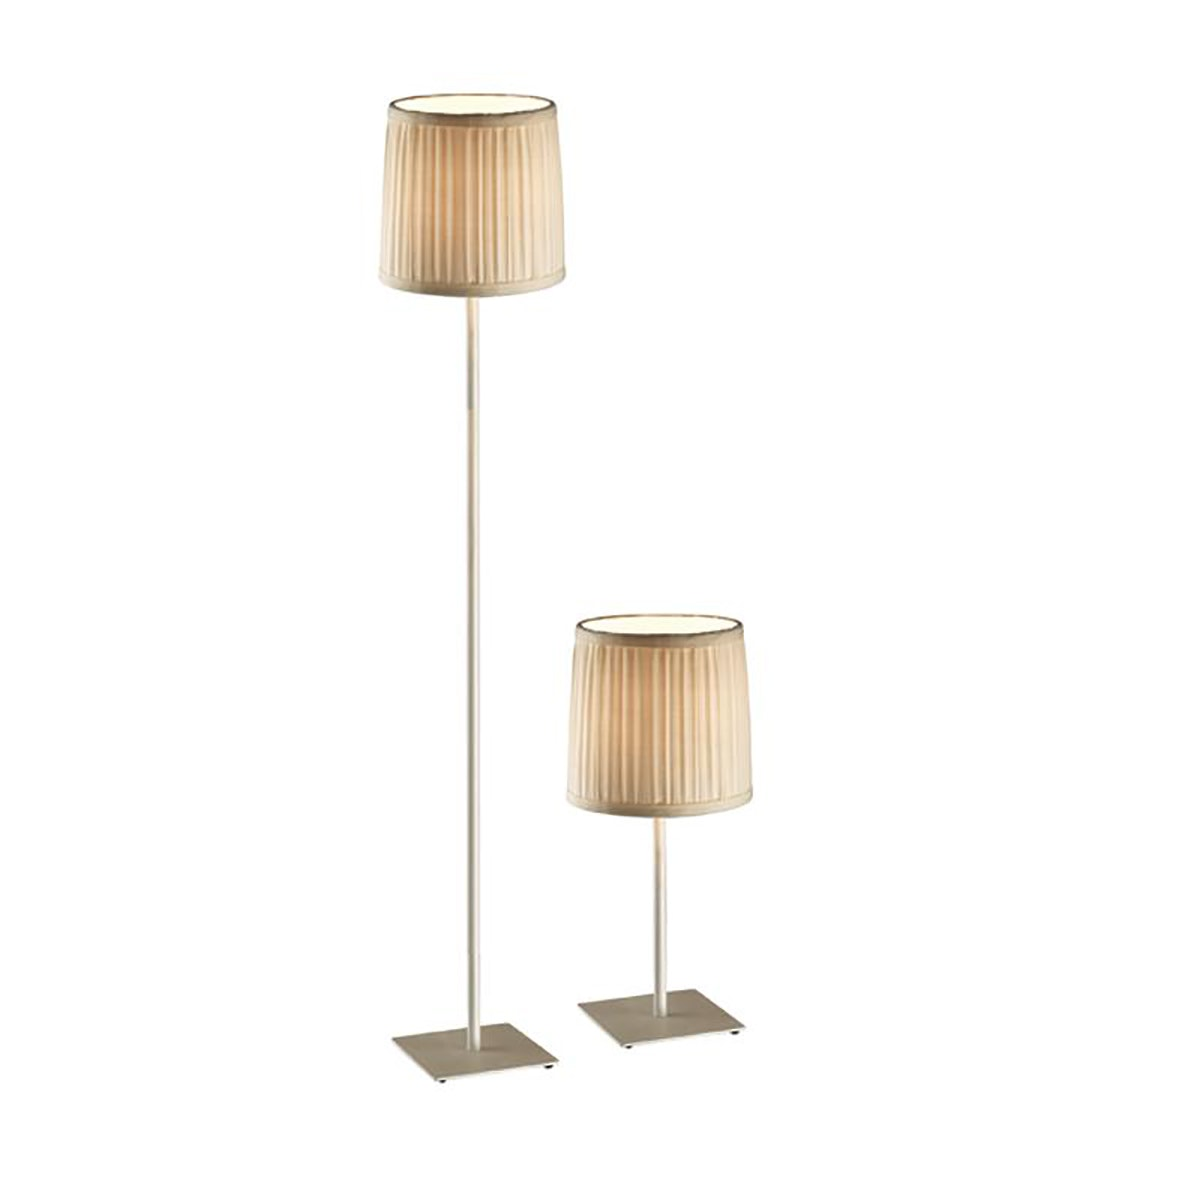 3+PROJECTS Combo Set (1 Table Lamp+1 Floor Lamp) White 3+DL-1276-WH-VG